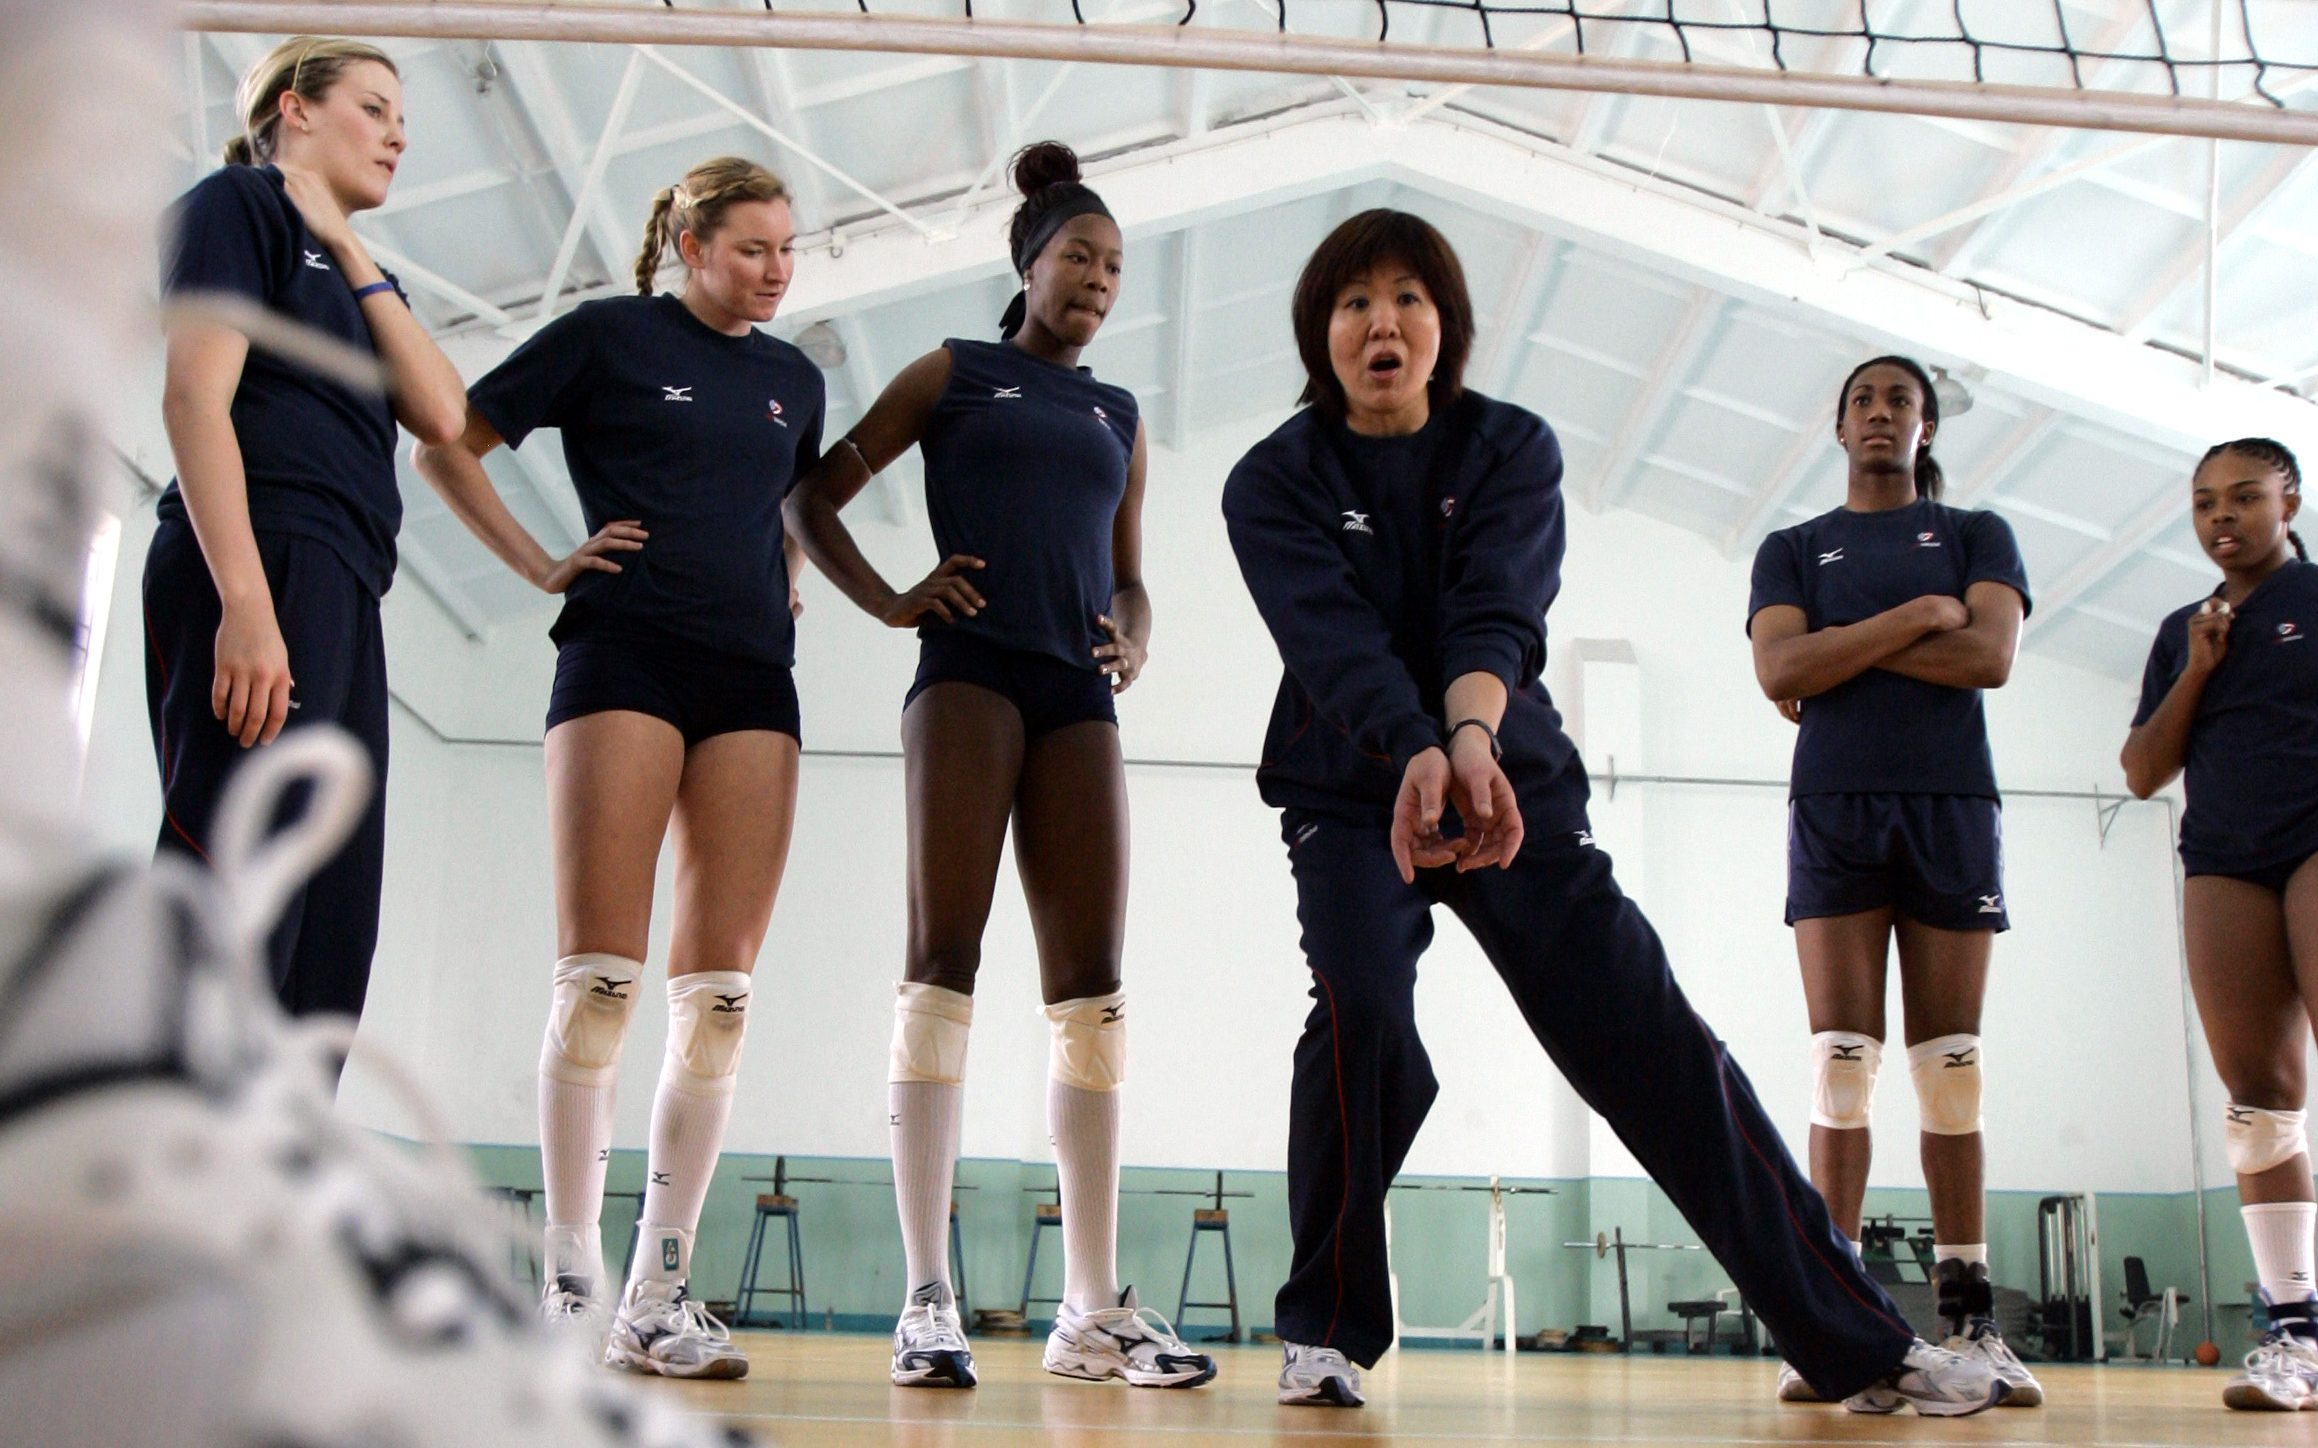 Team USA women's volleyball coach Jenny Lang Ping, of China, fourth from left, instructs her players during a workout, Wednesday, March 19, 2008, in Tianjin, China. Players, from left, Tracy Stalls, Angie McGinnis, Destinee Hooker, Foluke Akinredewo, and,  Therese Crawford, listen to Lang Ping.